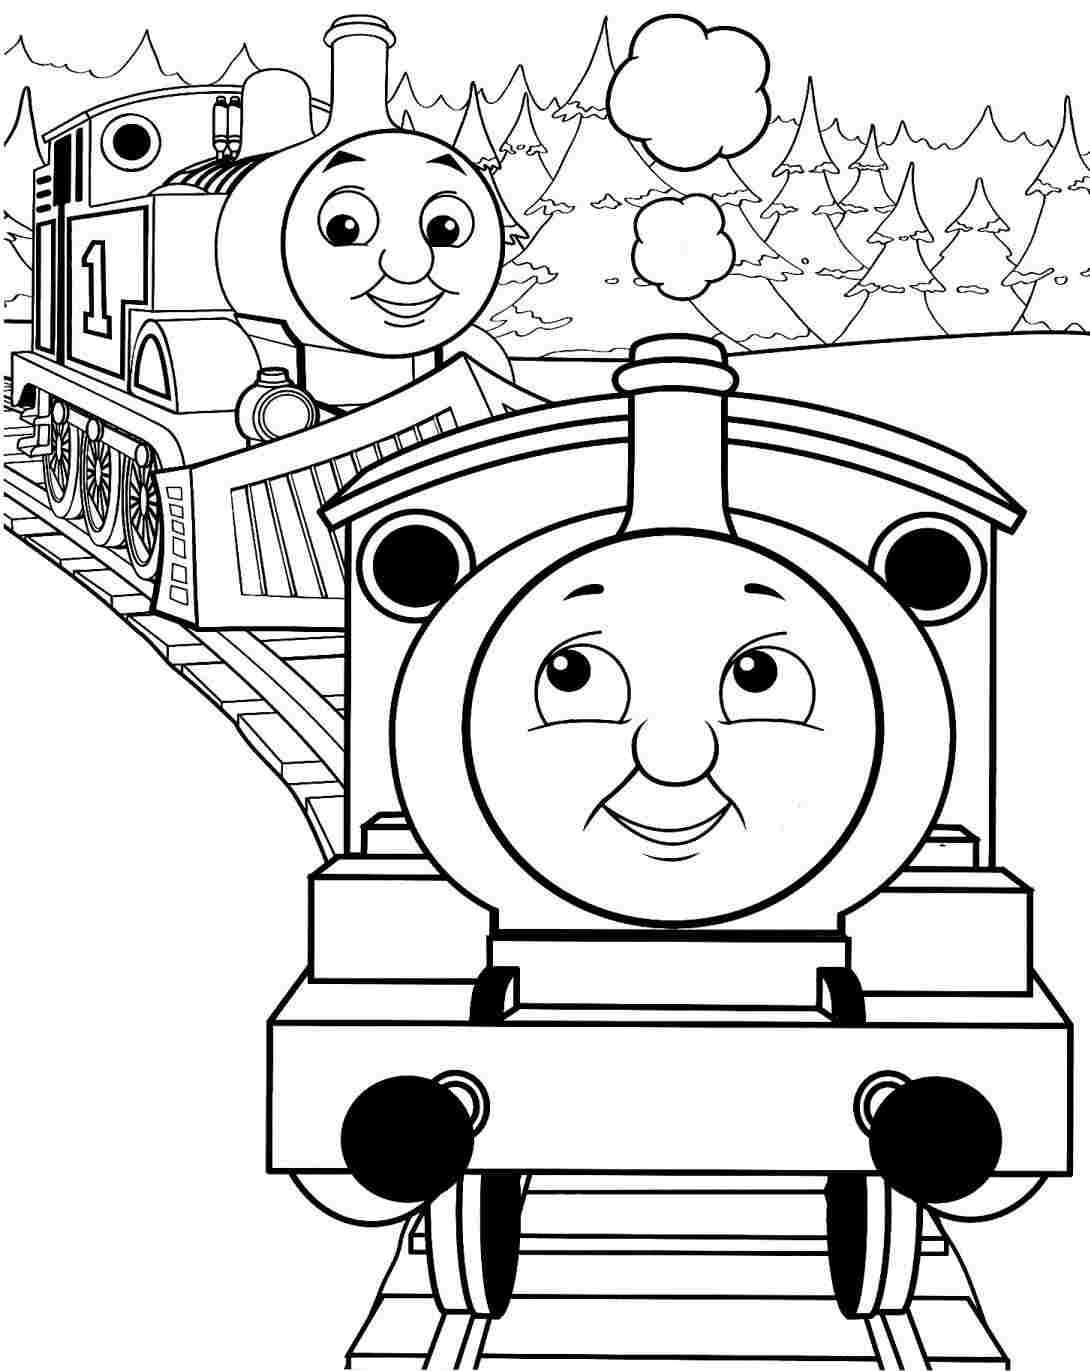 Simple Thomas The Train Coloring Pages Thomas The Train